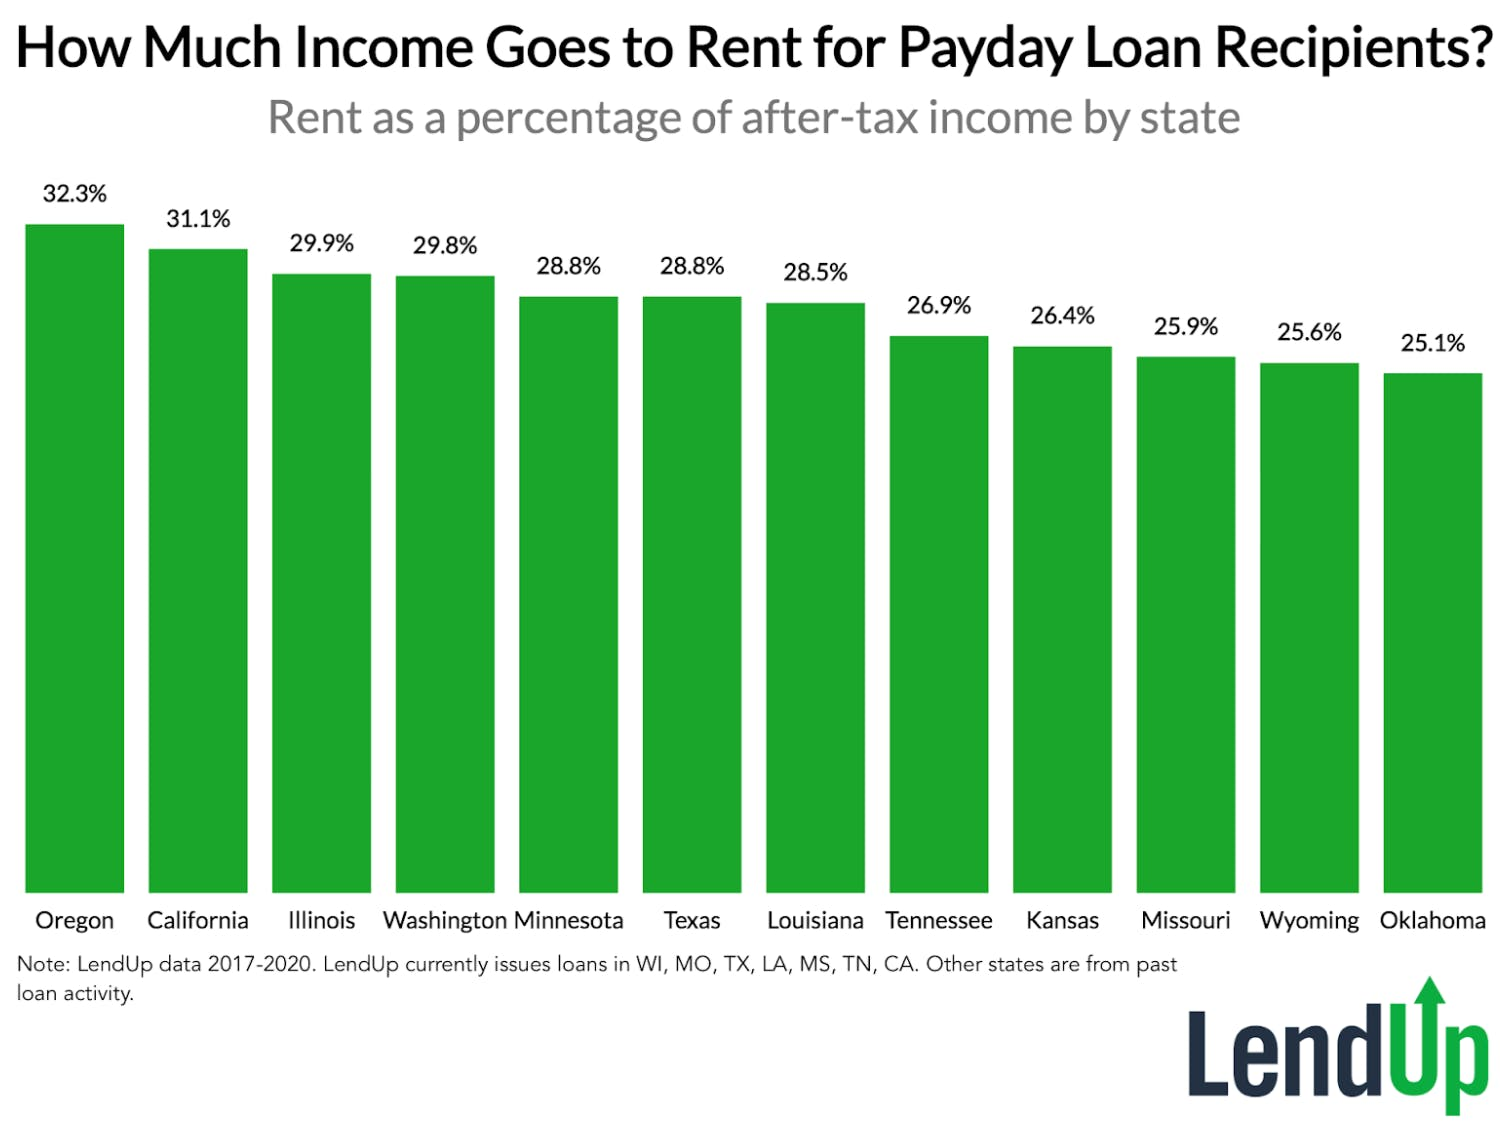 How Much Income Goes to Rent for Payday Loan Recipients?